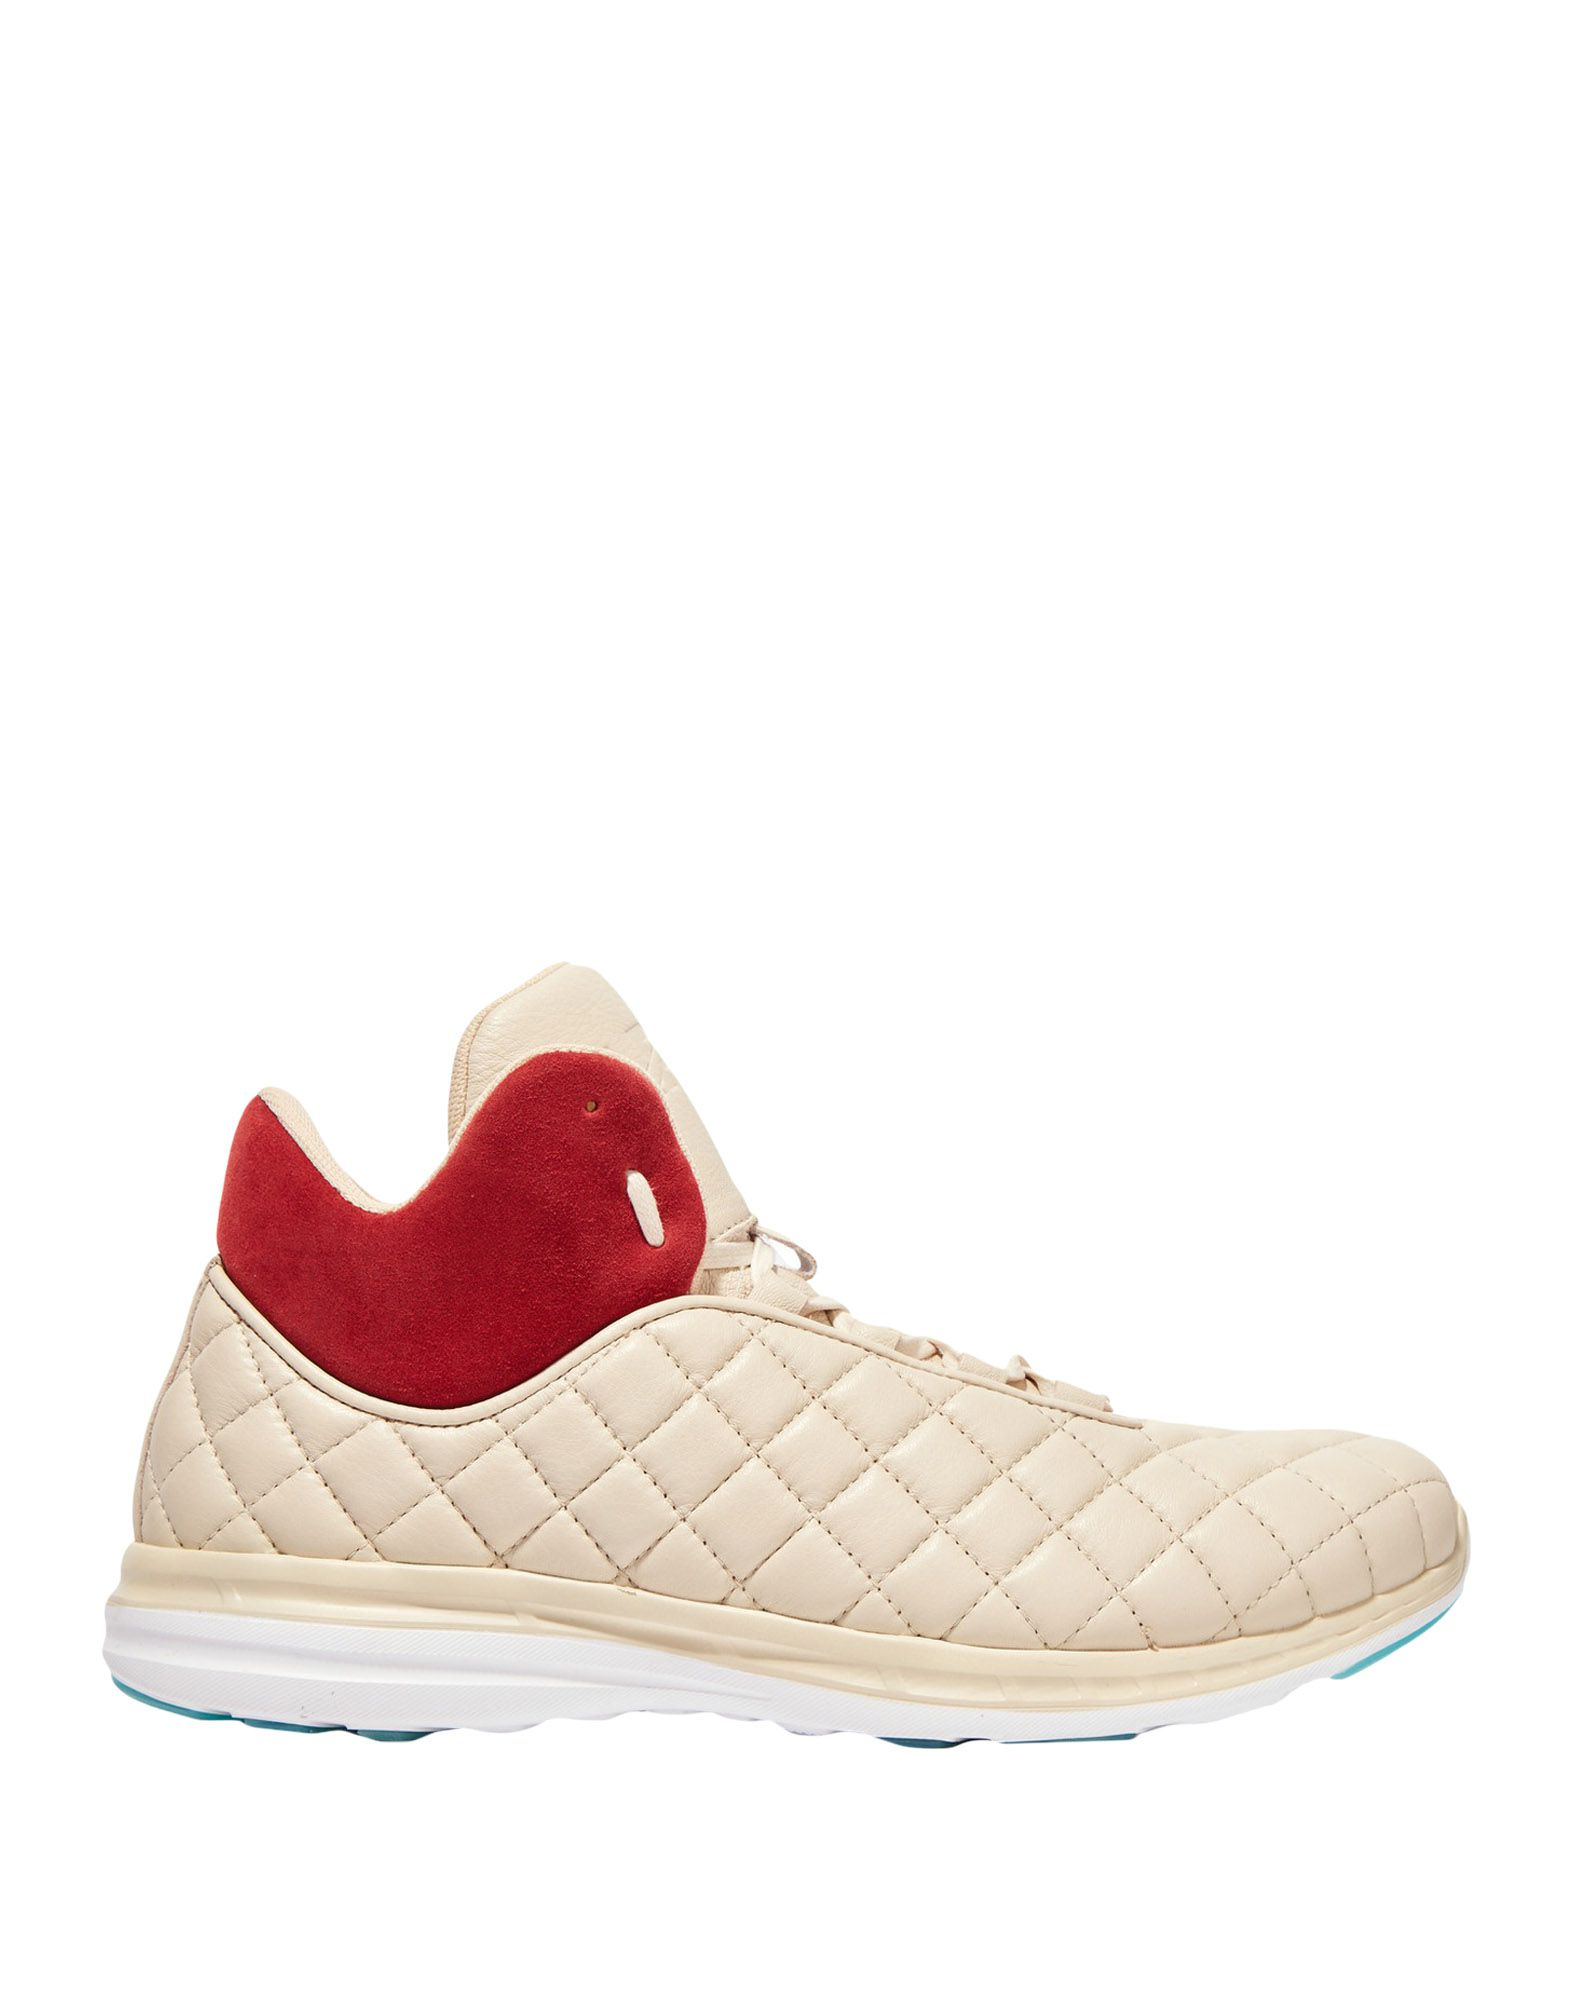 Stilvolle billige Schuhe Apl®  Athletic Propulsion Labs Sneakers Damen  Apl® 11519662IM d372e9